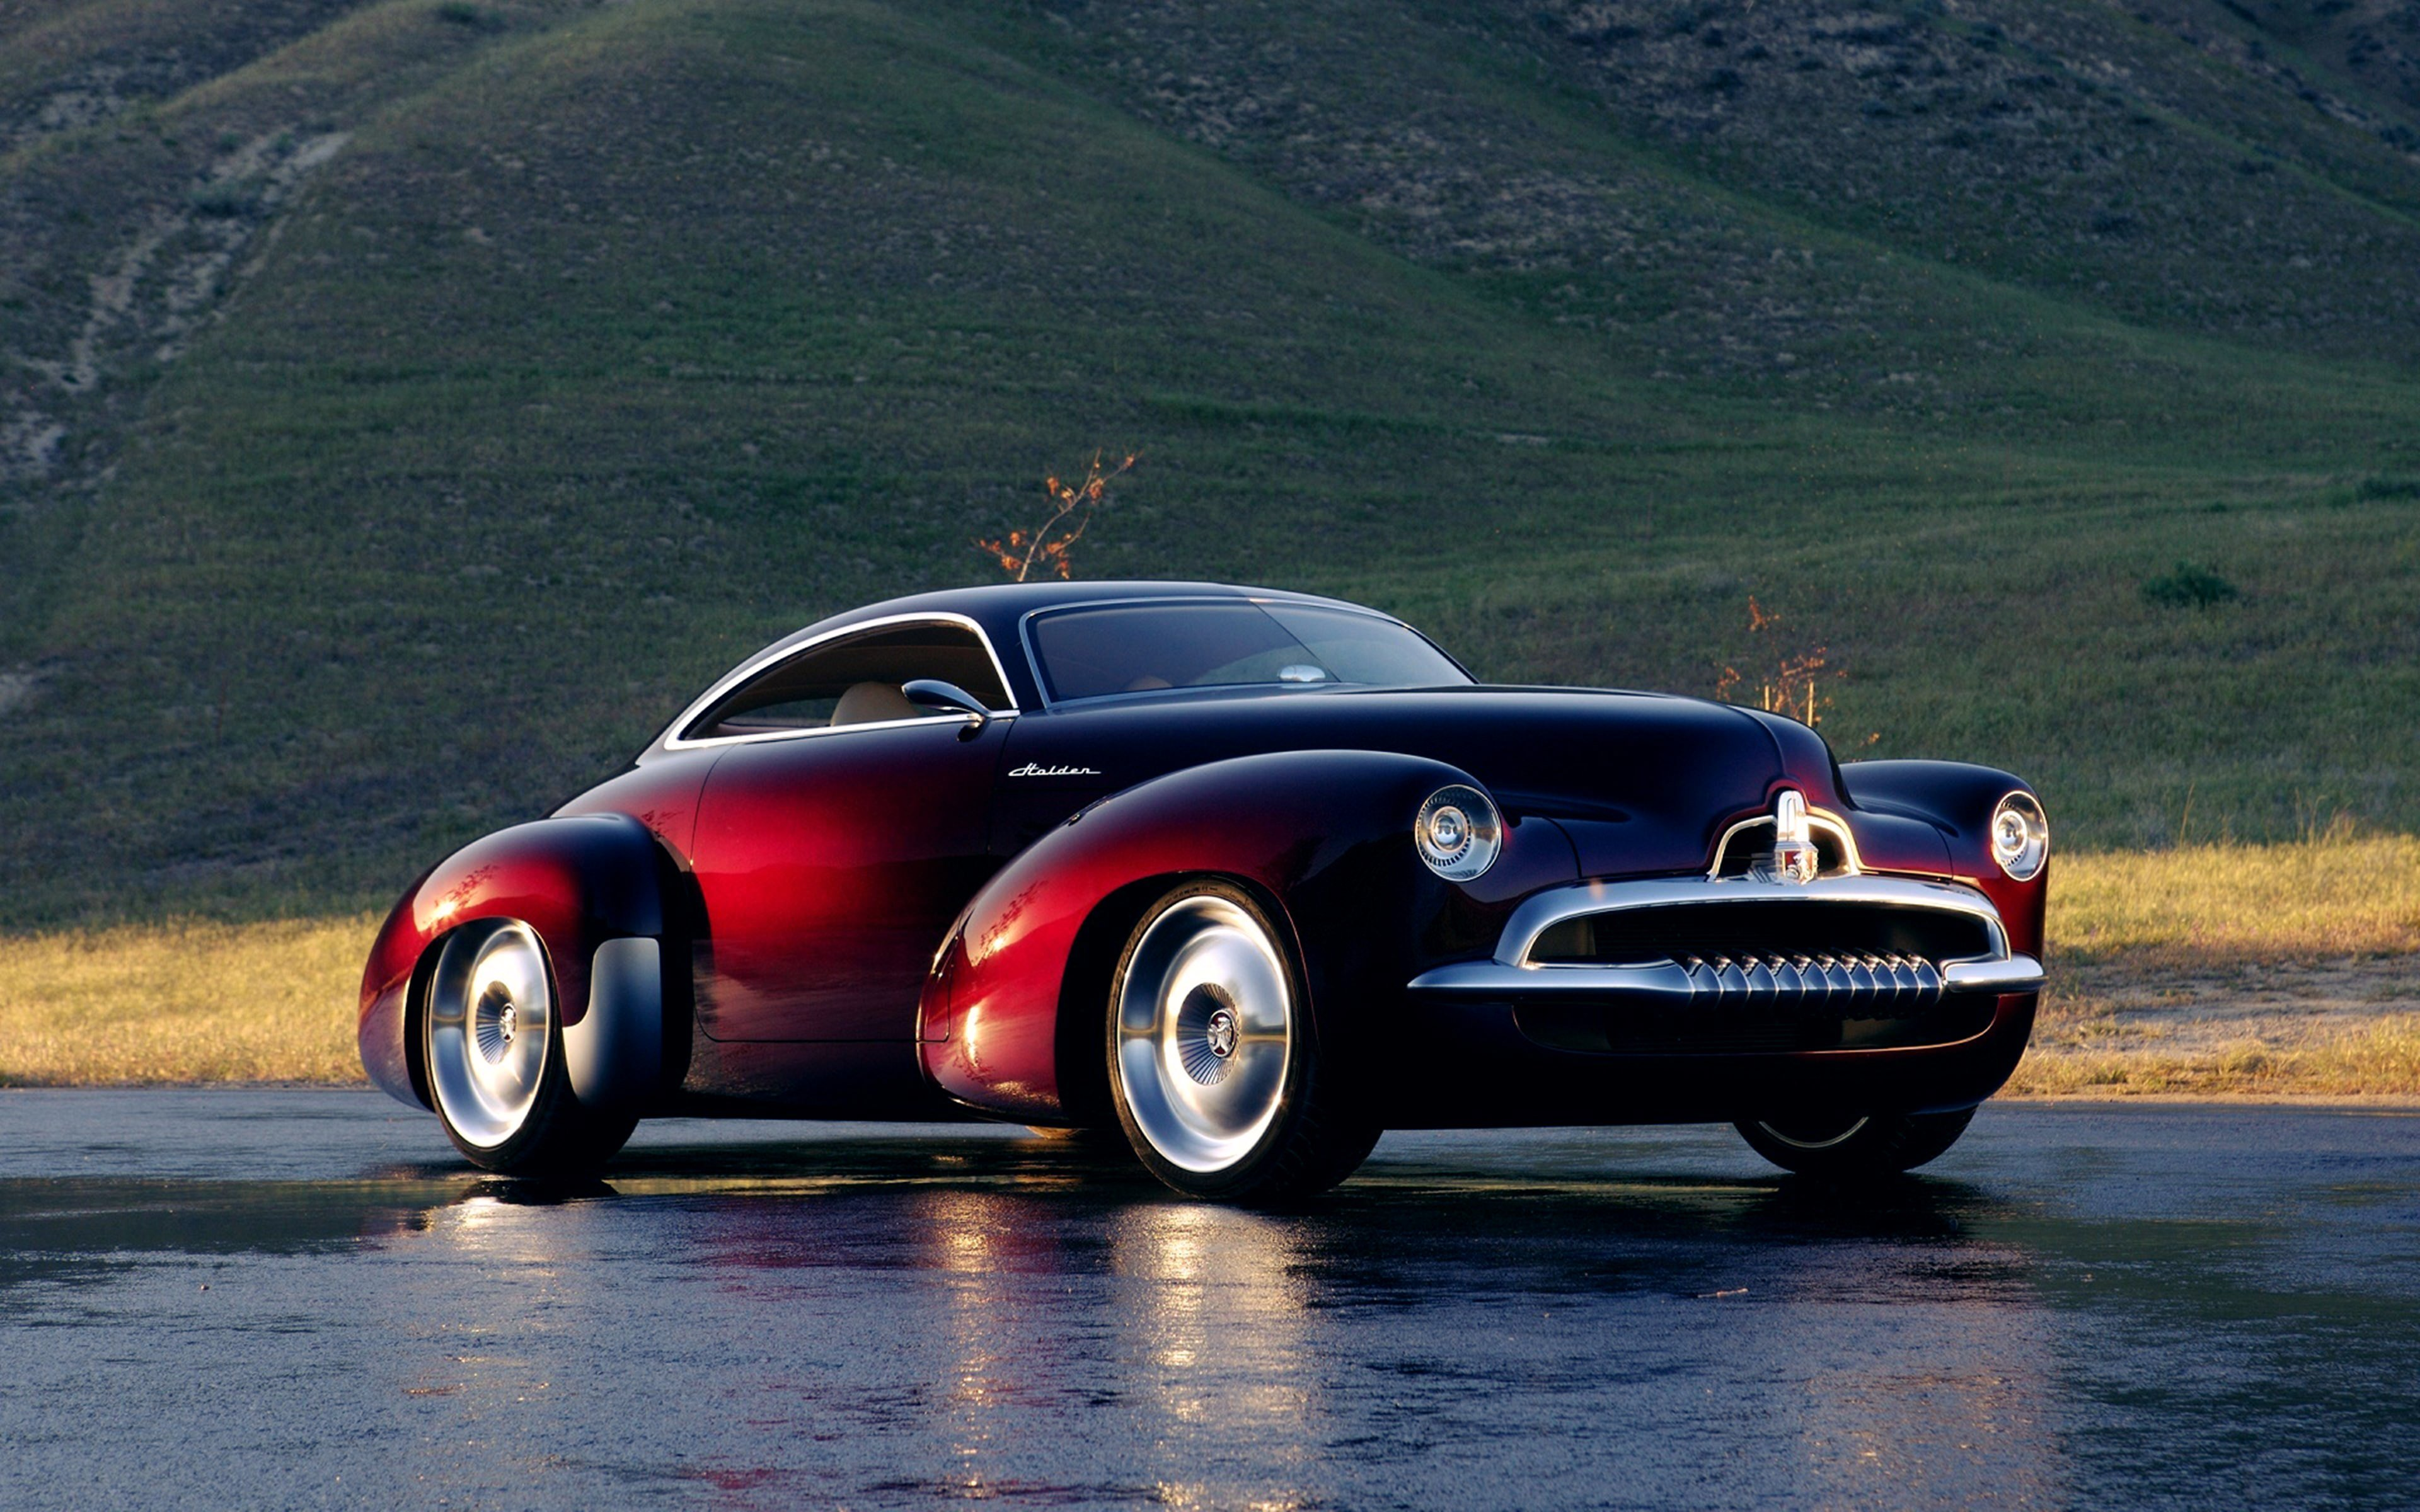 185 HD Car Backgrounds Wallpapers Images Pictures Design 3840x2400